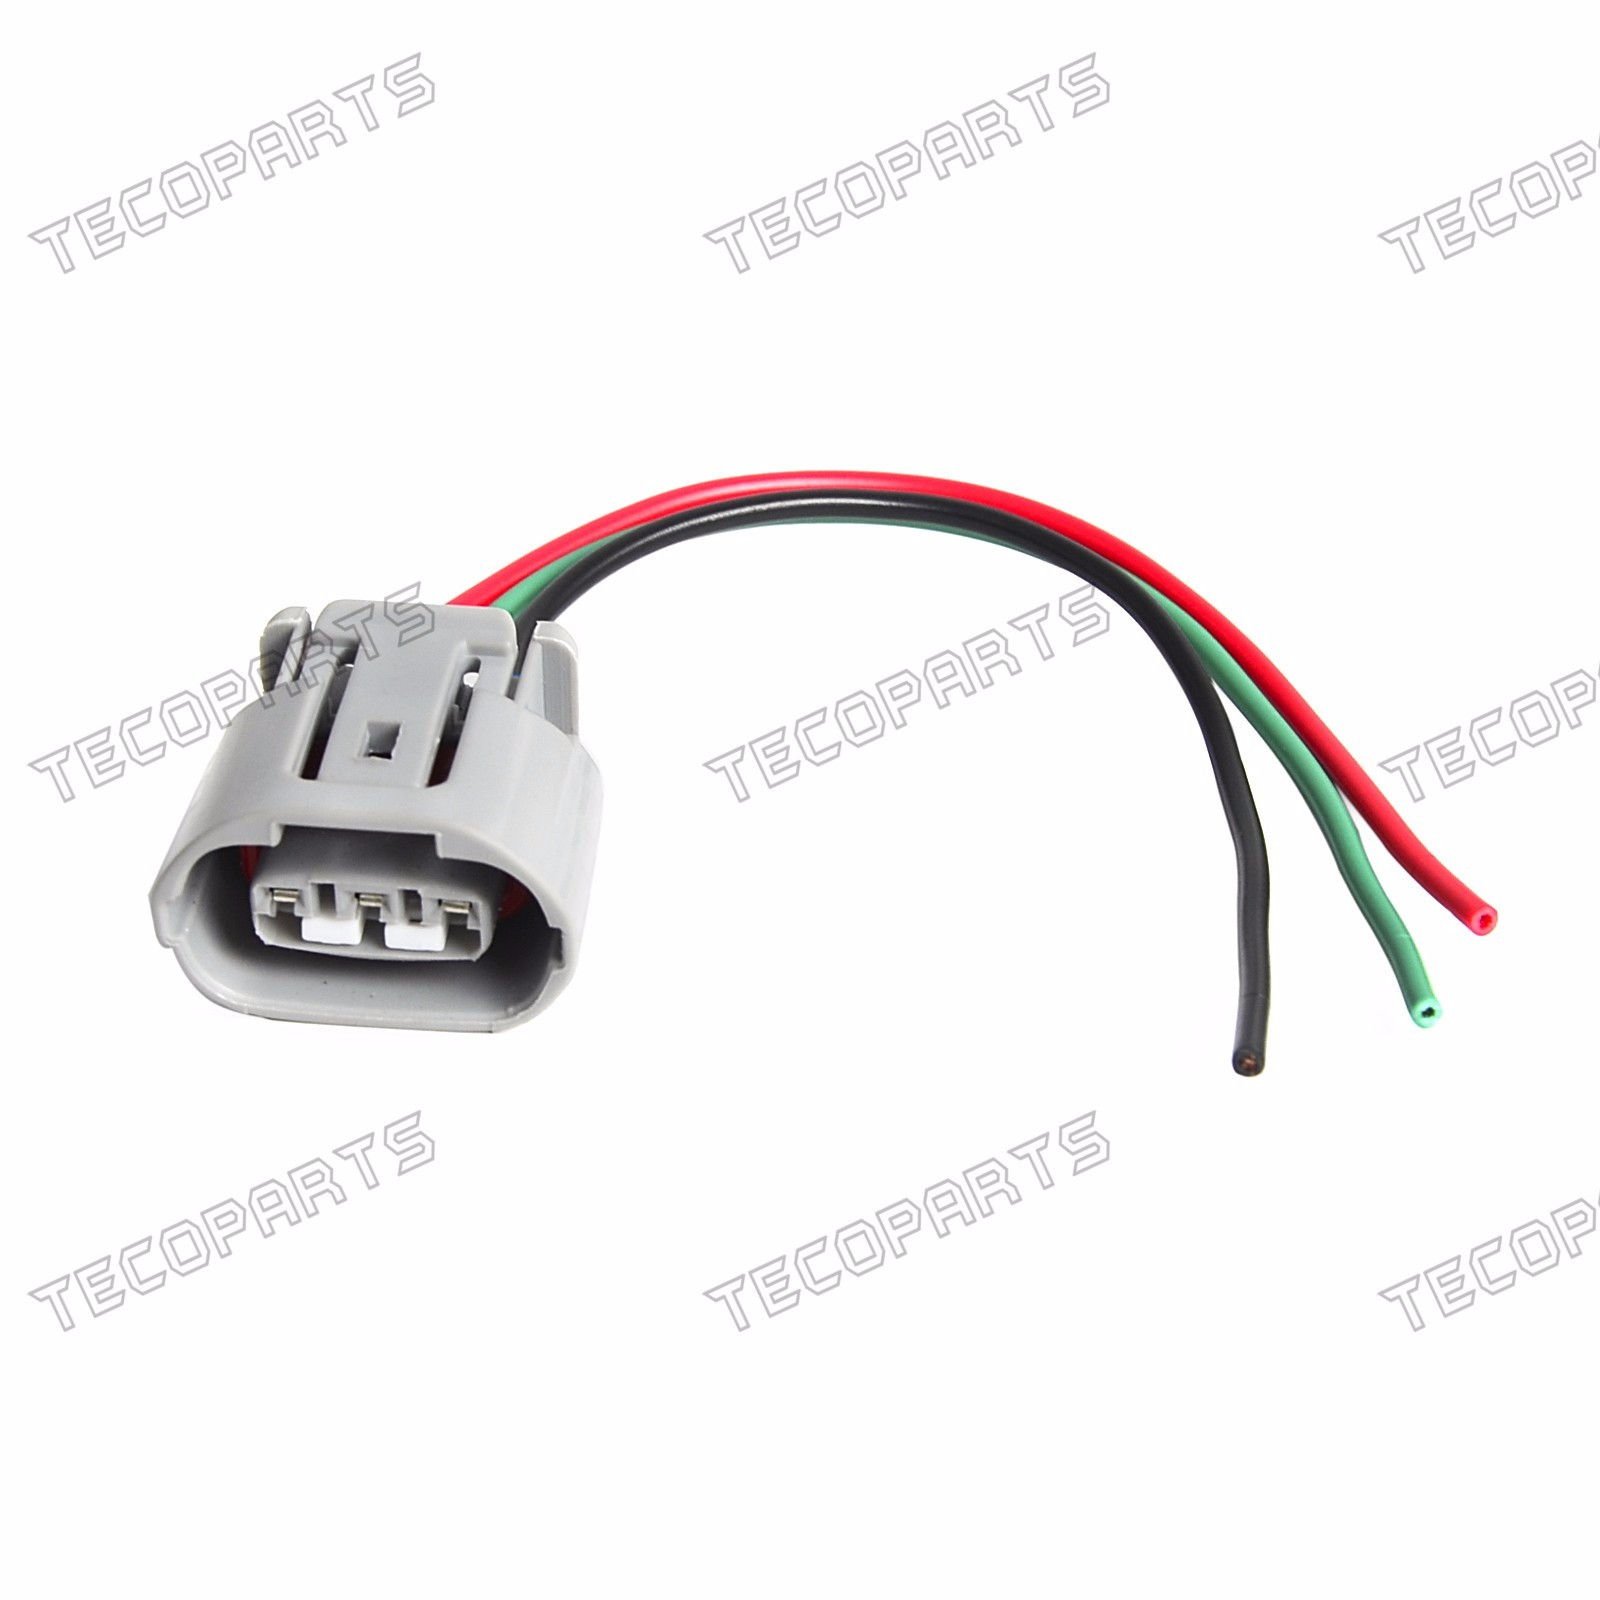 Hitachi Alternator Wiring Plug Auto Electrical Diagram Outstanding Nissan Pigtail Pictures